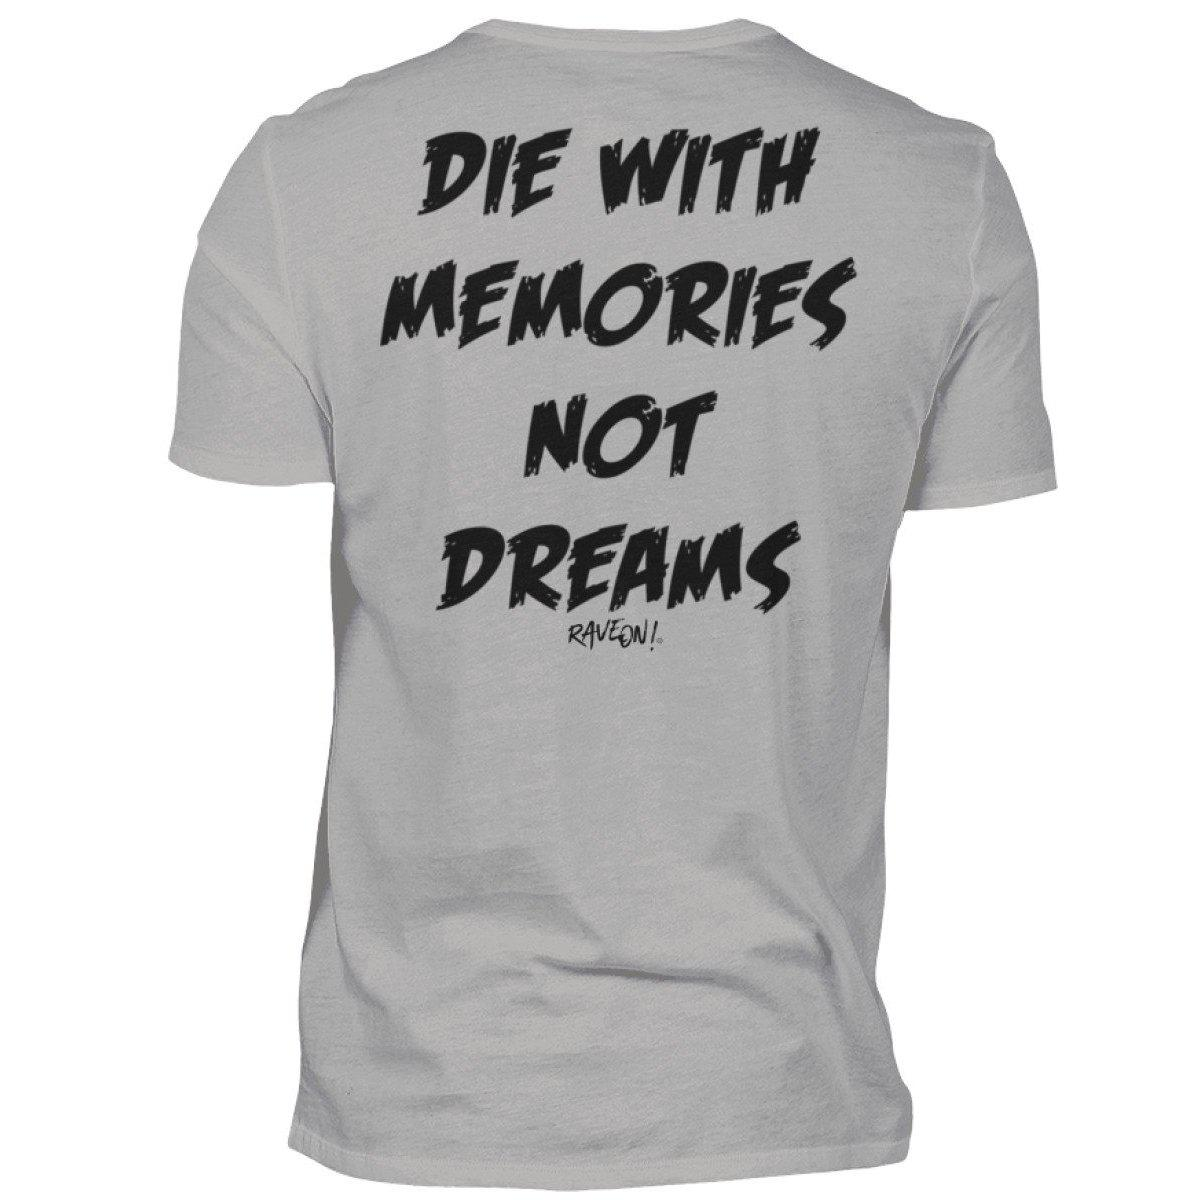 DIE WITH MEMORIES NOT DreamS - Rave On!® - Premiumshirt Herren Premium Shirt Grey Heather / S - Rave On!® der Club & Techno Szene Shop für Coole Junge Mode Streetwear Style & Fashion Outfits + Sexy Festival 420 Stuff